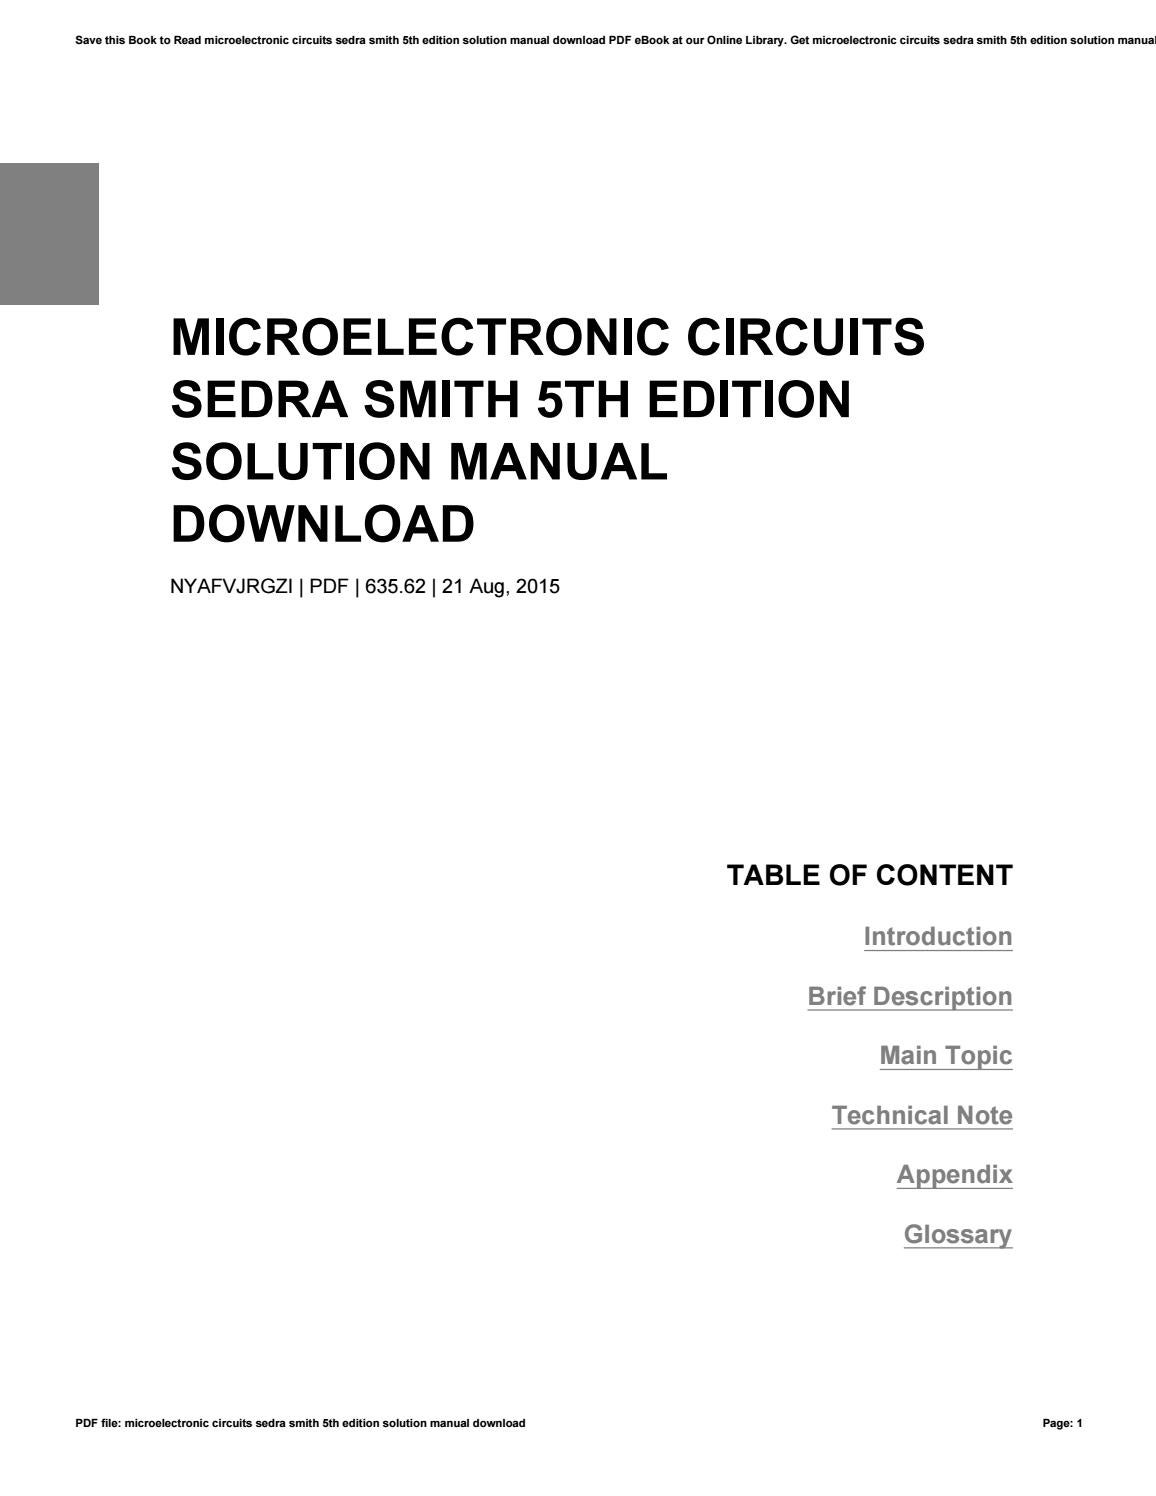 Solutions manual microelectronic circuits analysis and design 2nd edi….